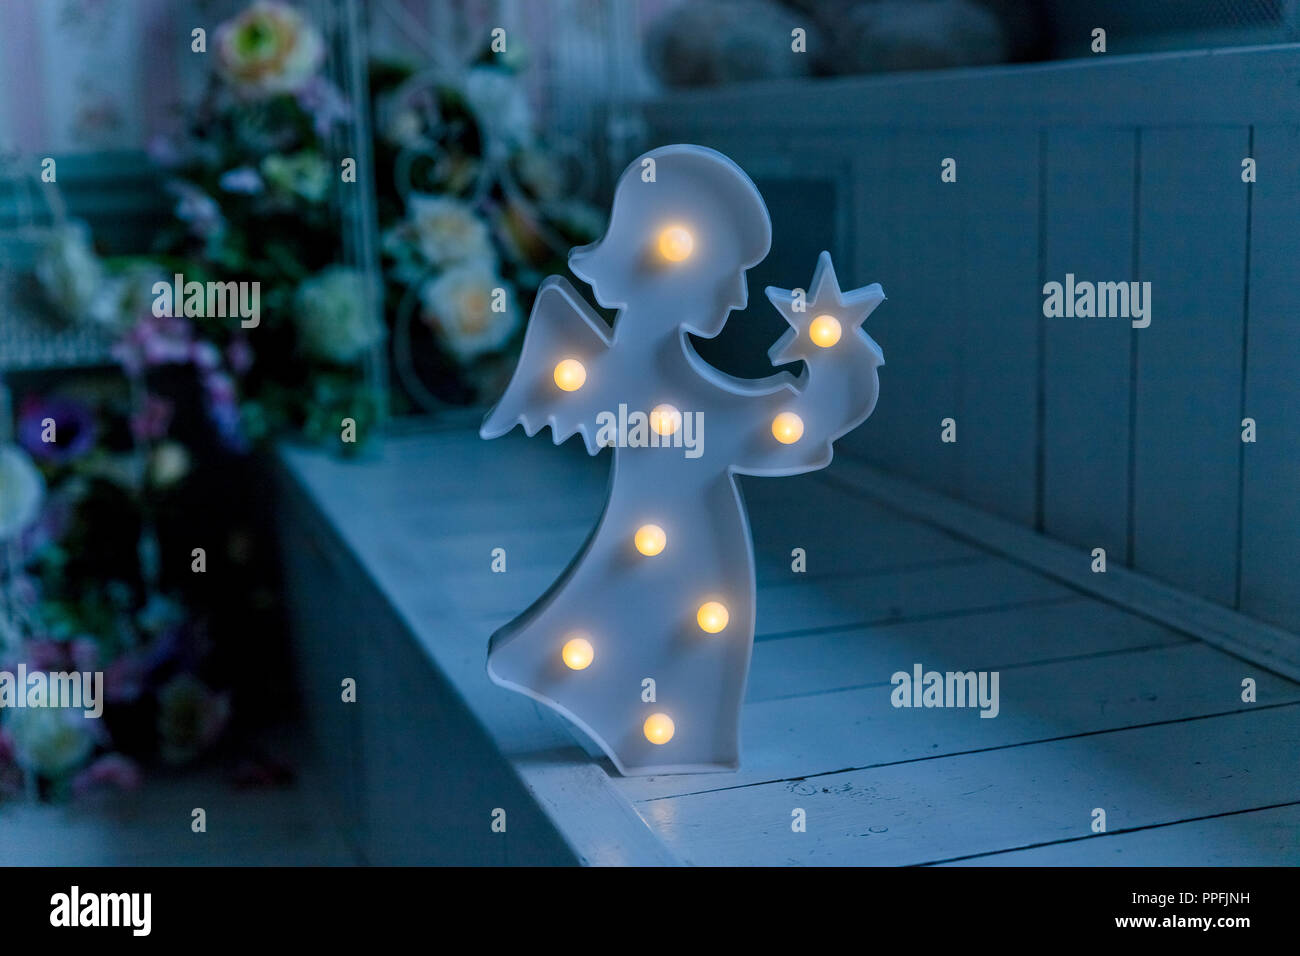 Photo Of Nightlight In The Shape Of Angel In The Childrens Room